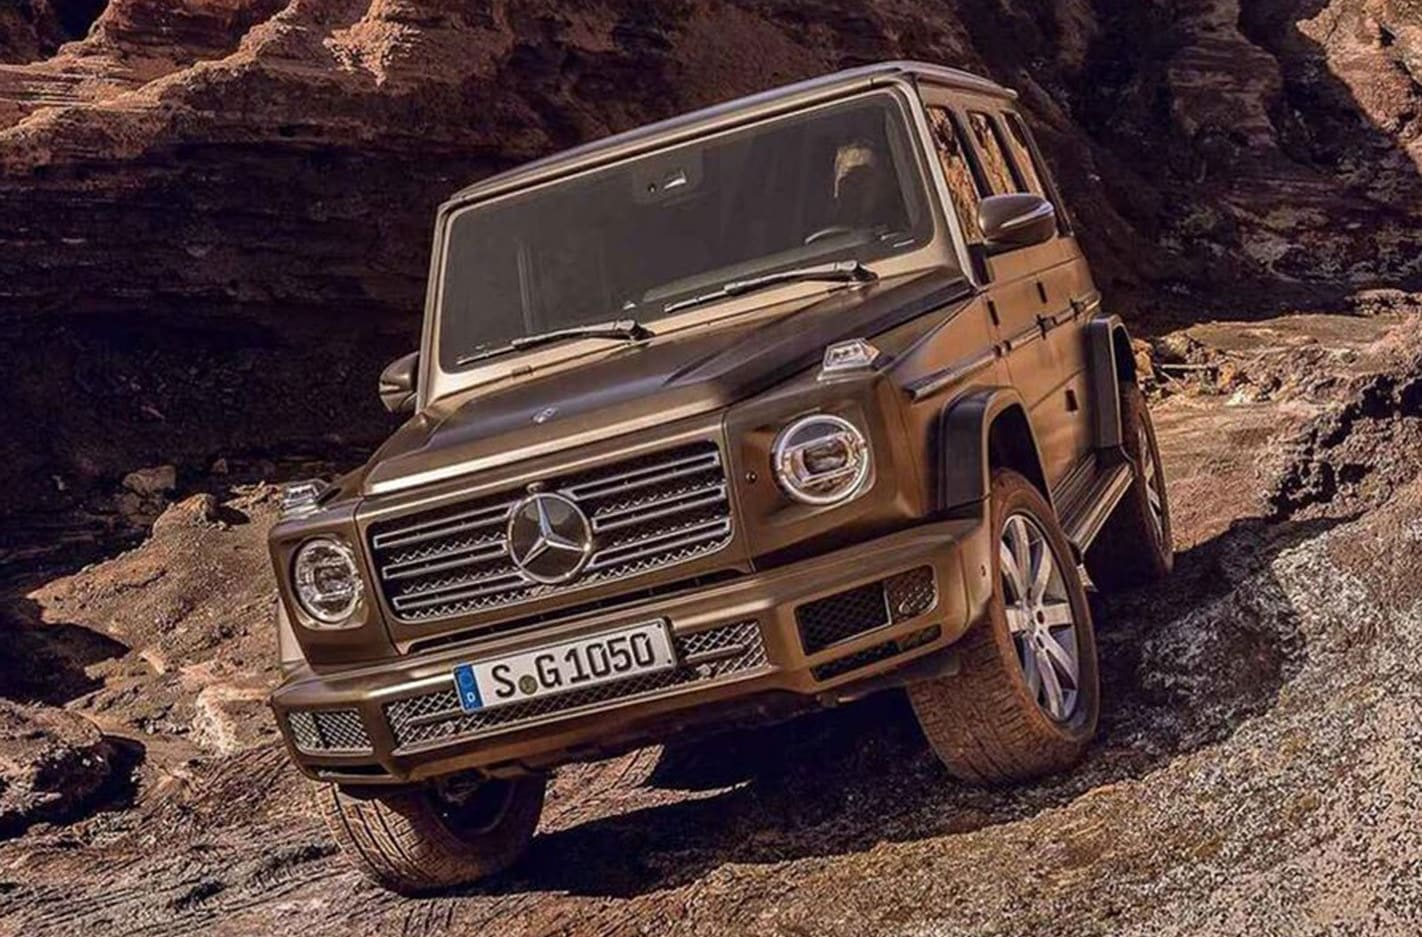 2018 Mercedes Benz G Class images leaked main